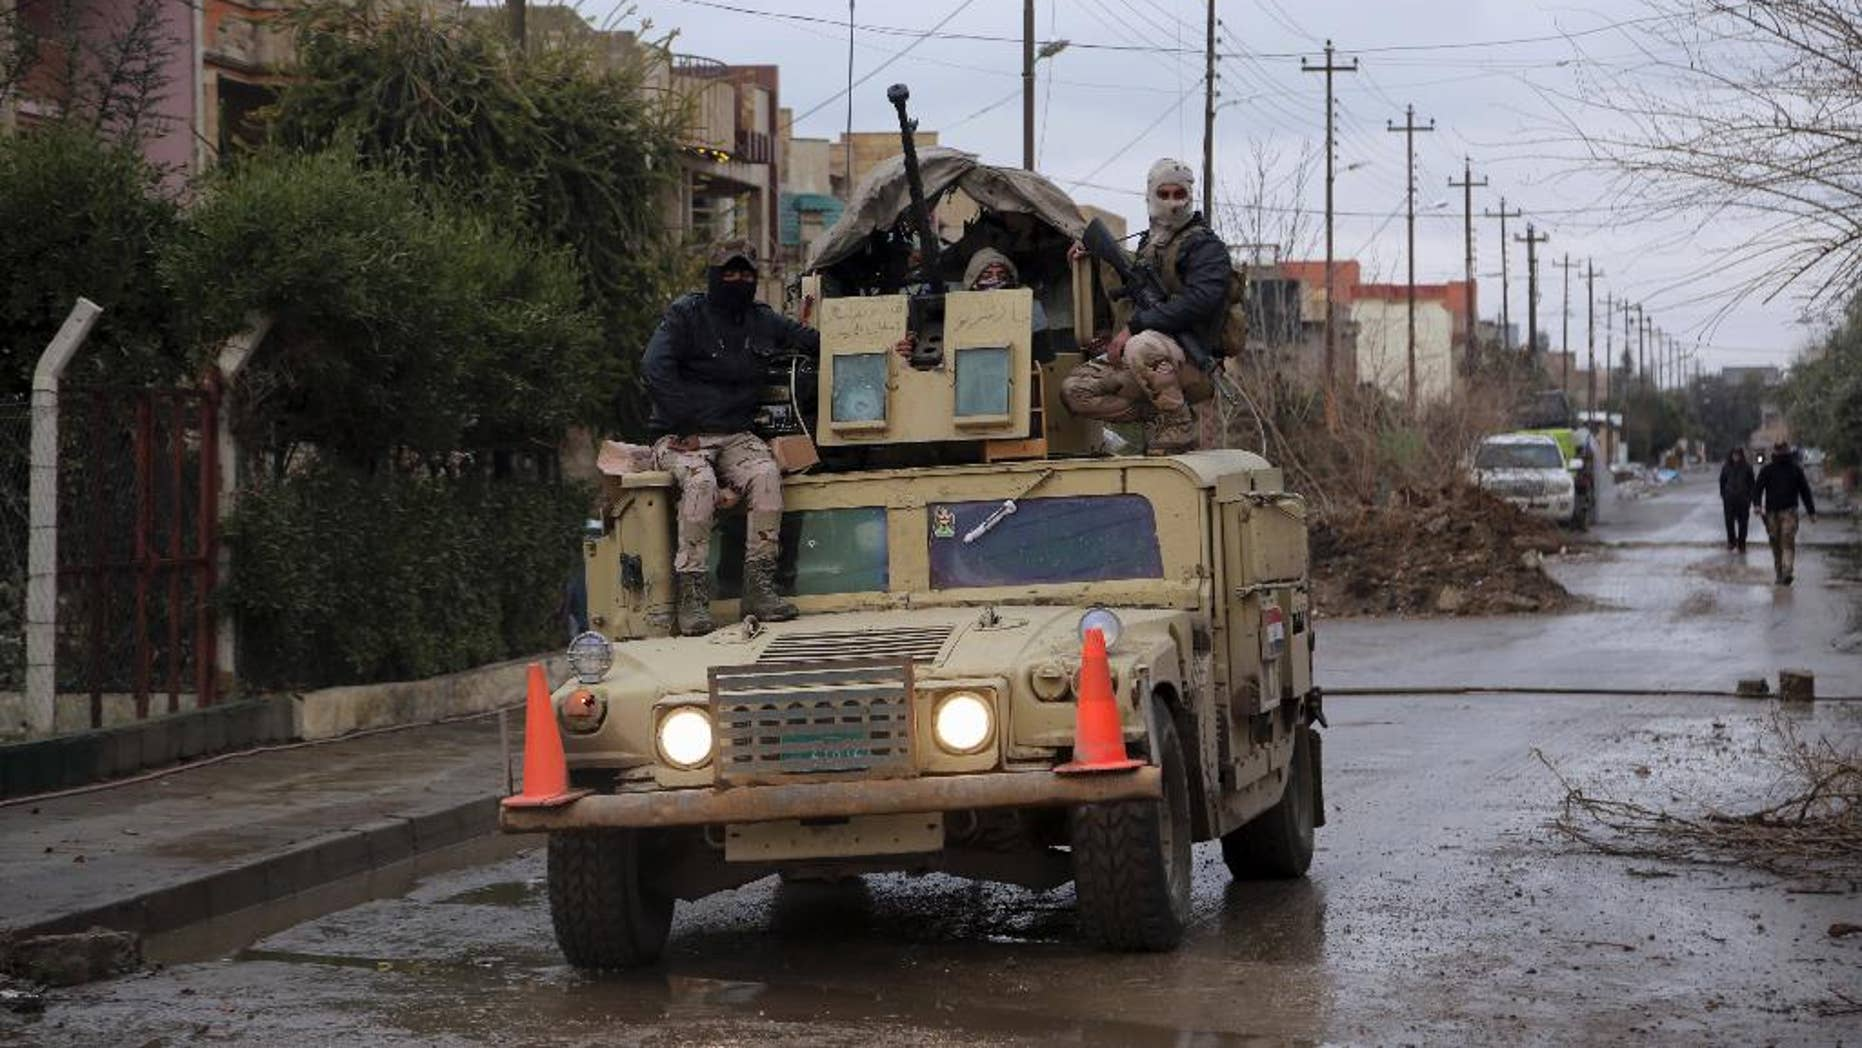 Iraq's Army forces patrol in the eastern side of Mosul, Iraq, Saturday, Jan. 28, 2017. (AP Photo/Khalid Mohammed)